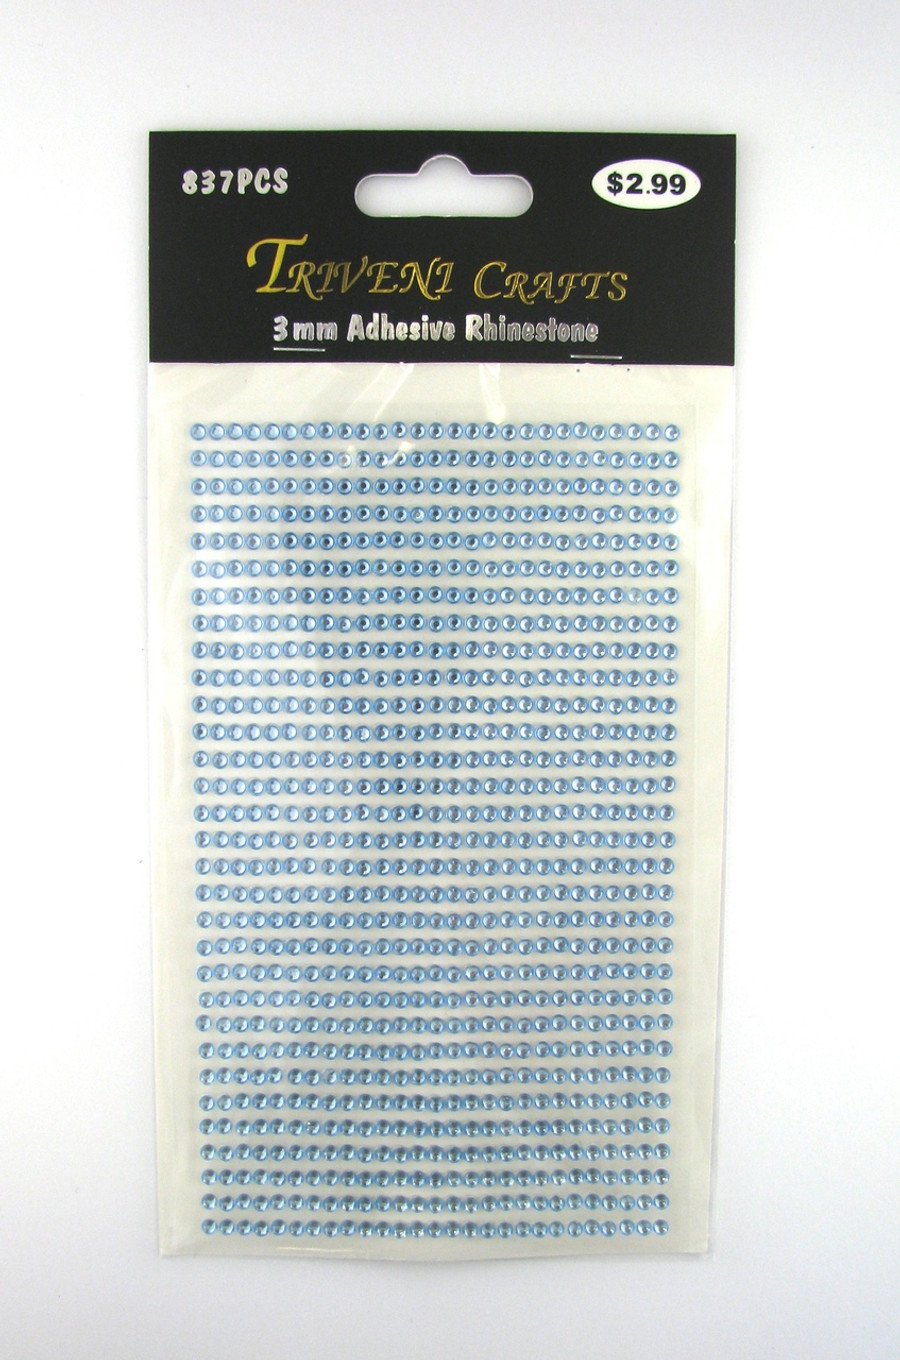 3mm Light Blue Flatback Rhinestones (837 pcs) Self-Adhesive - Easy Peel Strips